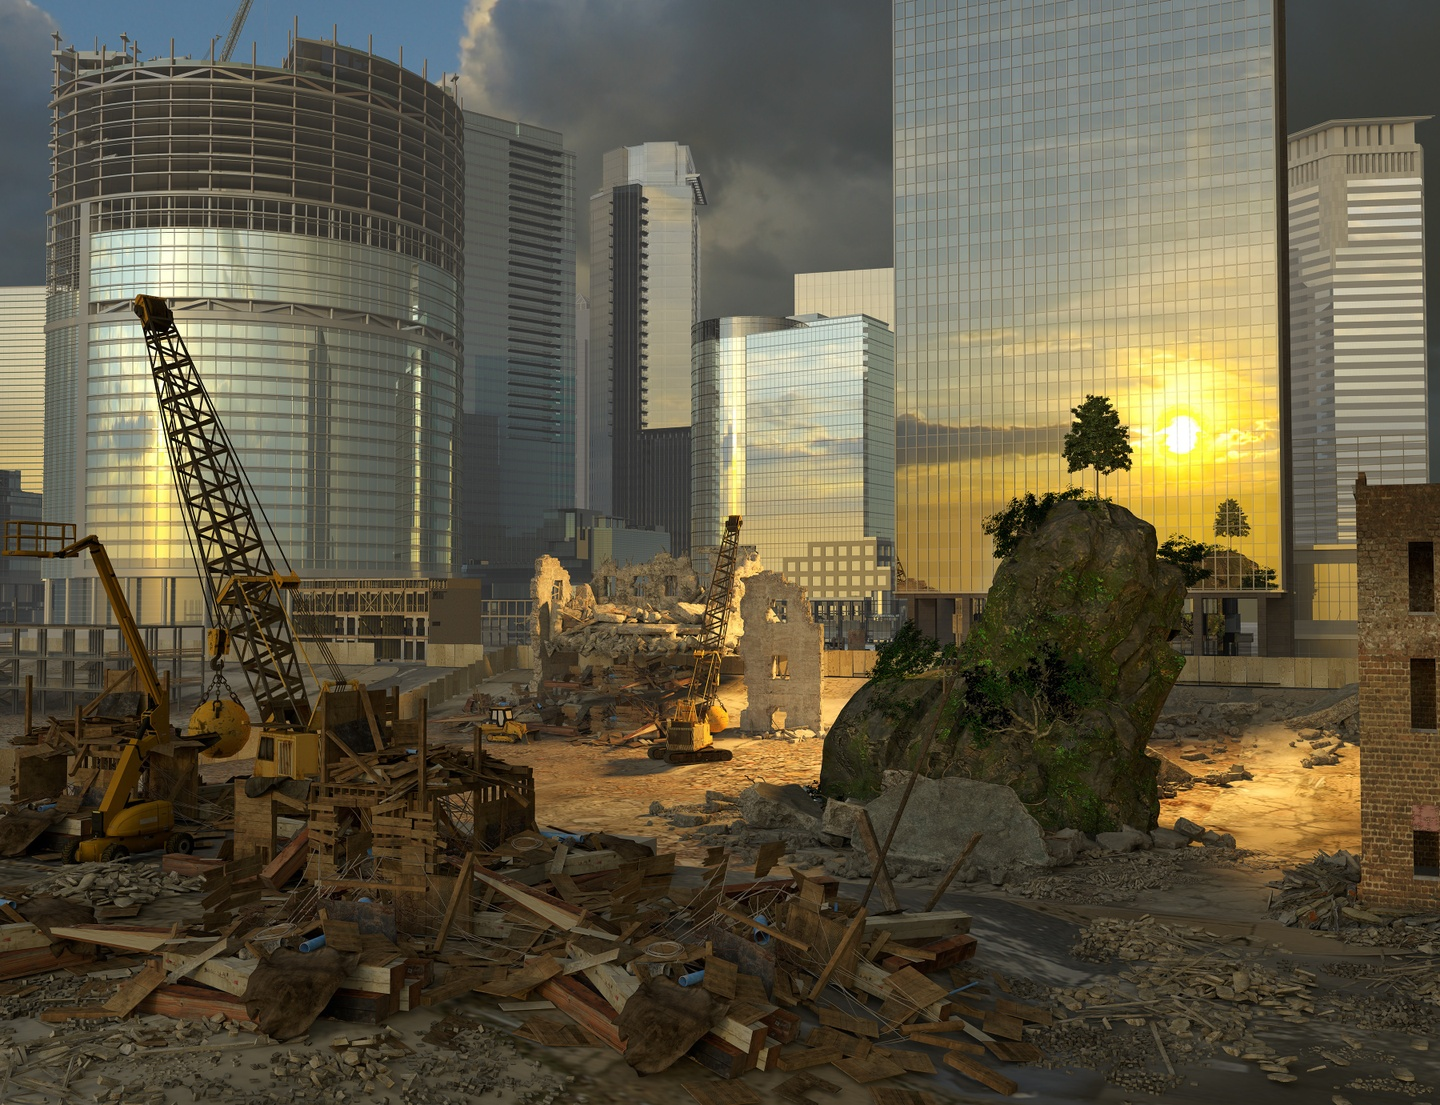 Archival pigment print featuring rubble and construction in the foreground with a couple of cranes, and shining, silver buildings in the background, with the sun reflecting off the facade of one.